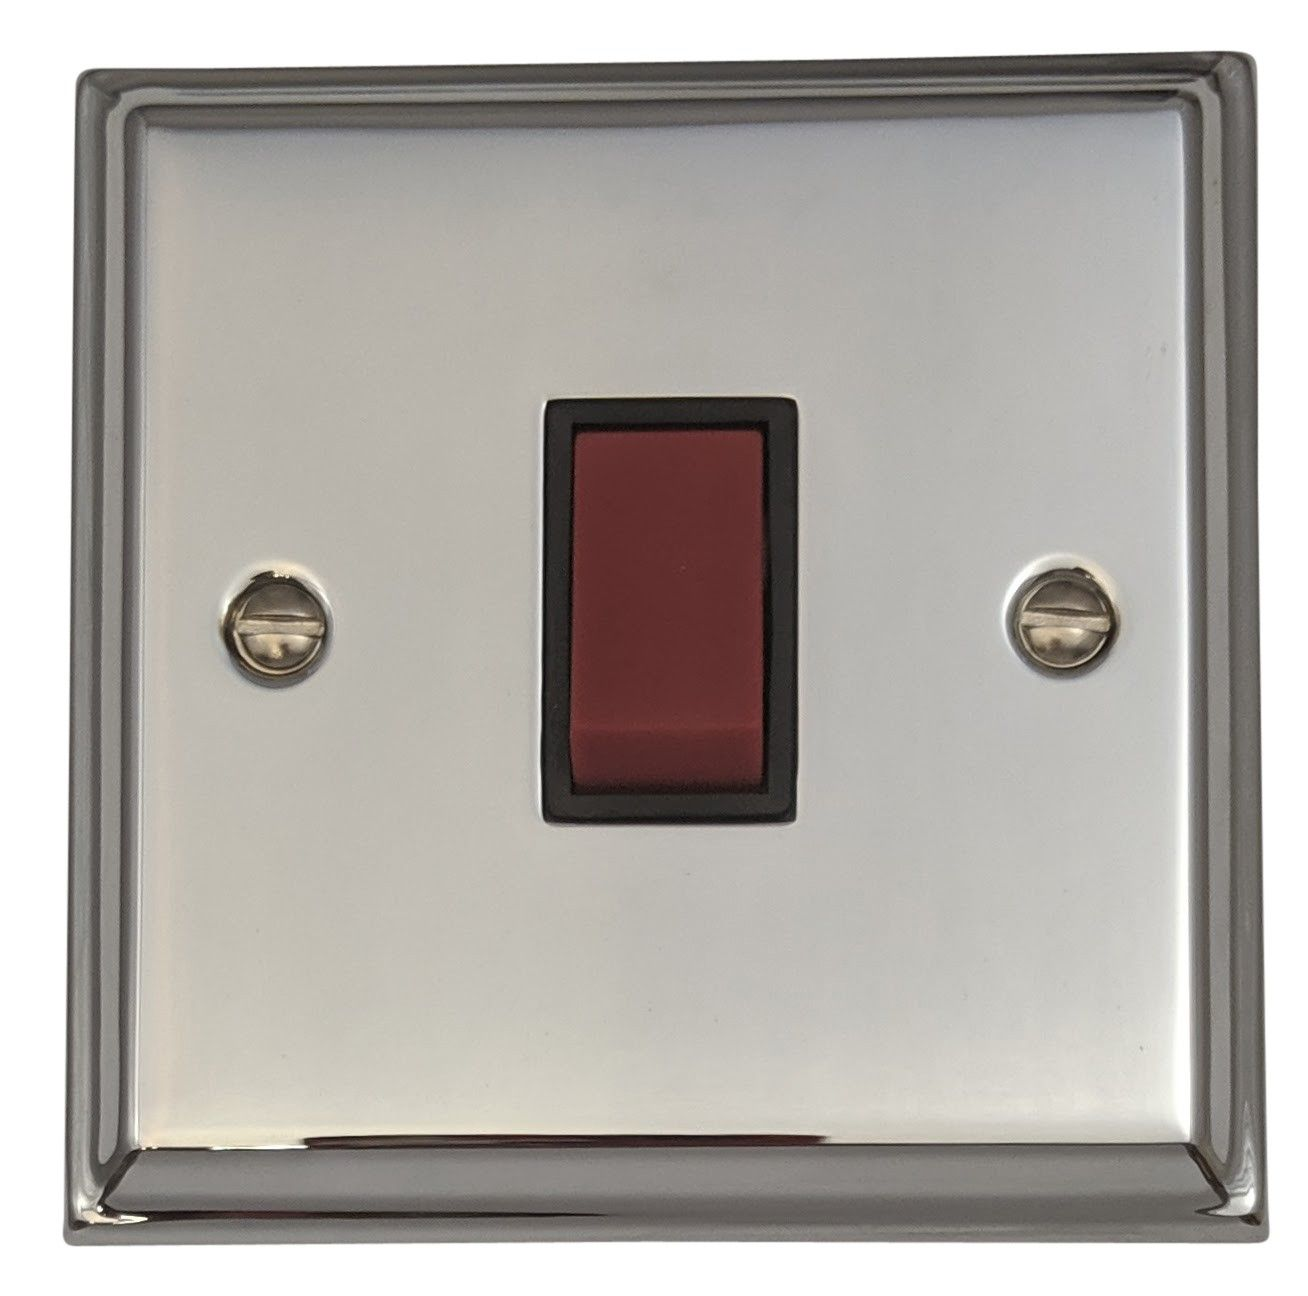 G&H DC47B Deco Plate Polished Chrome 45 Amp DP Cooker Switch Single Plate